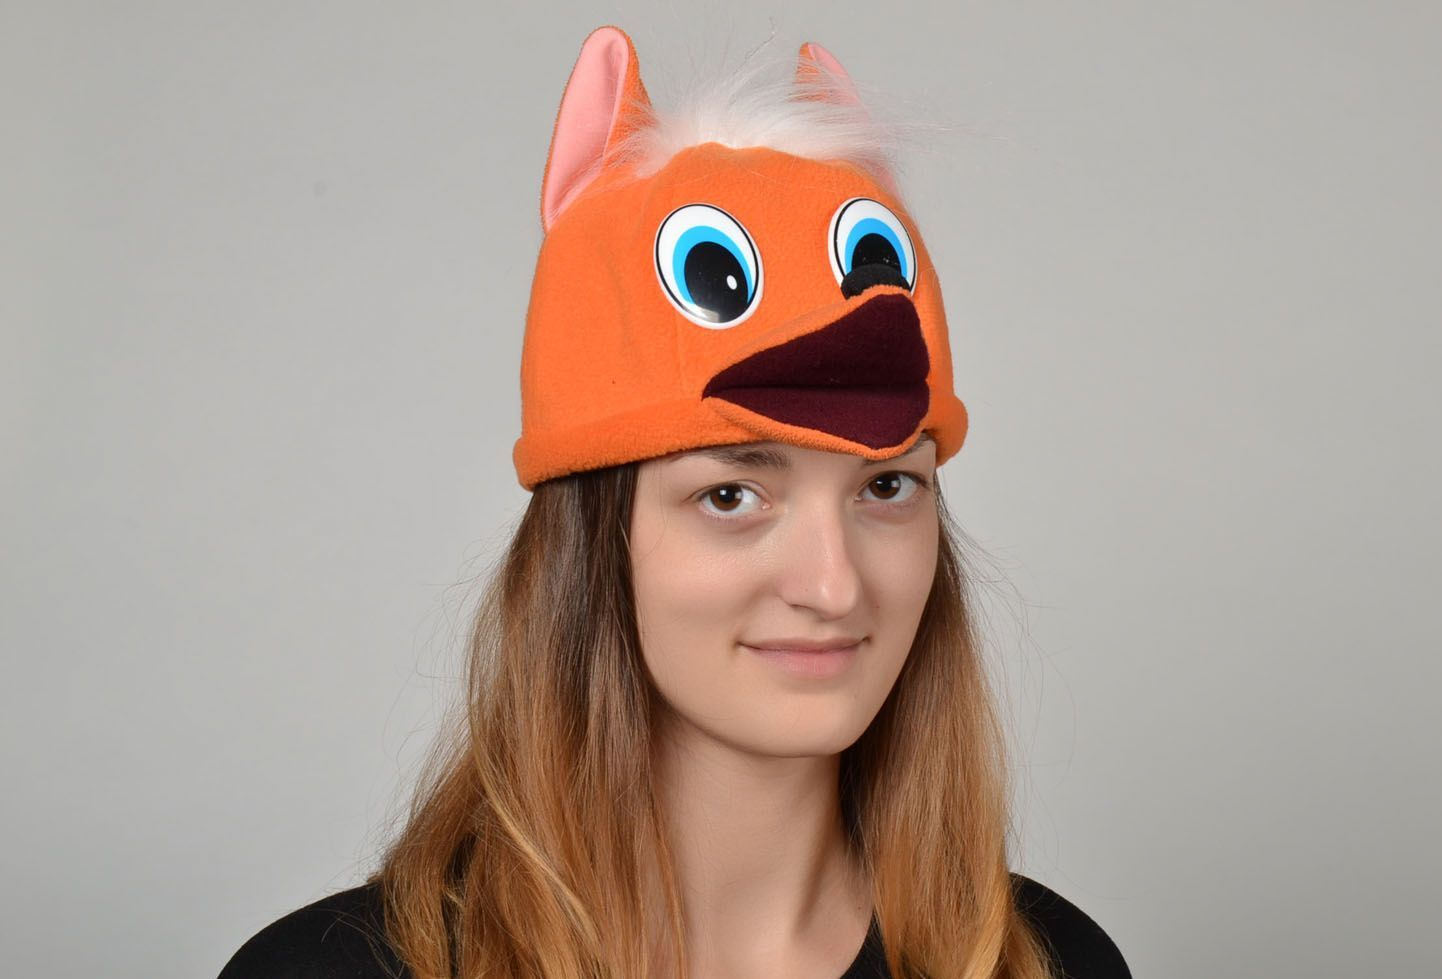 attire Carnival hat in the shape of a fox head - MADEheart.com